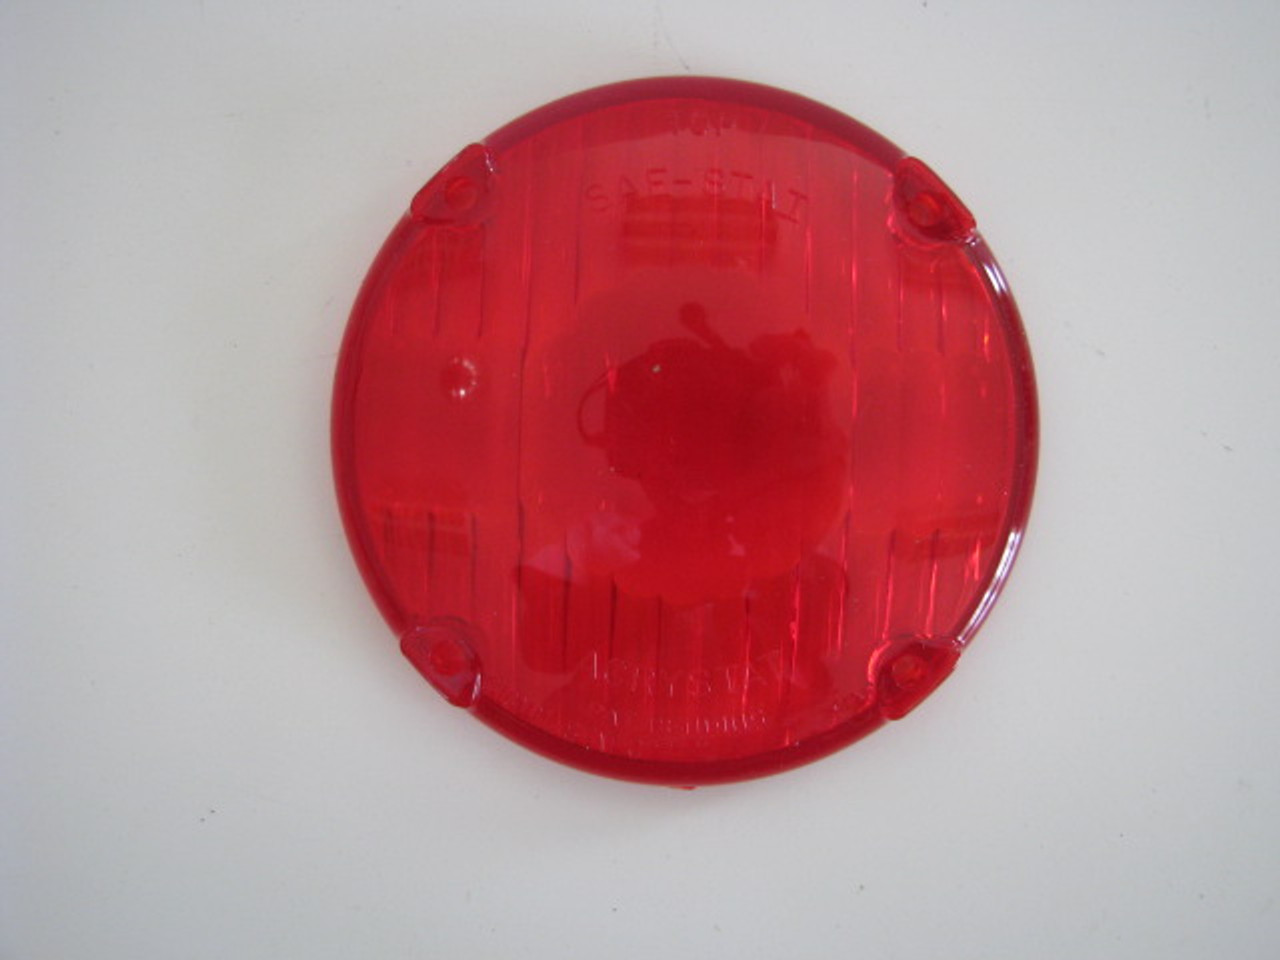 3-15/16 Inch Round Tail Light Lens - Red (CLT043)